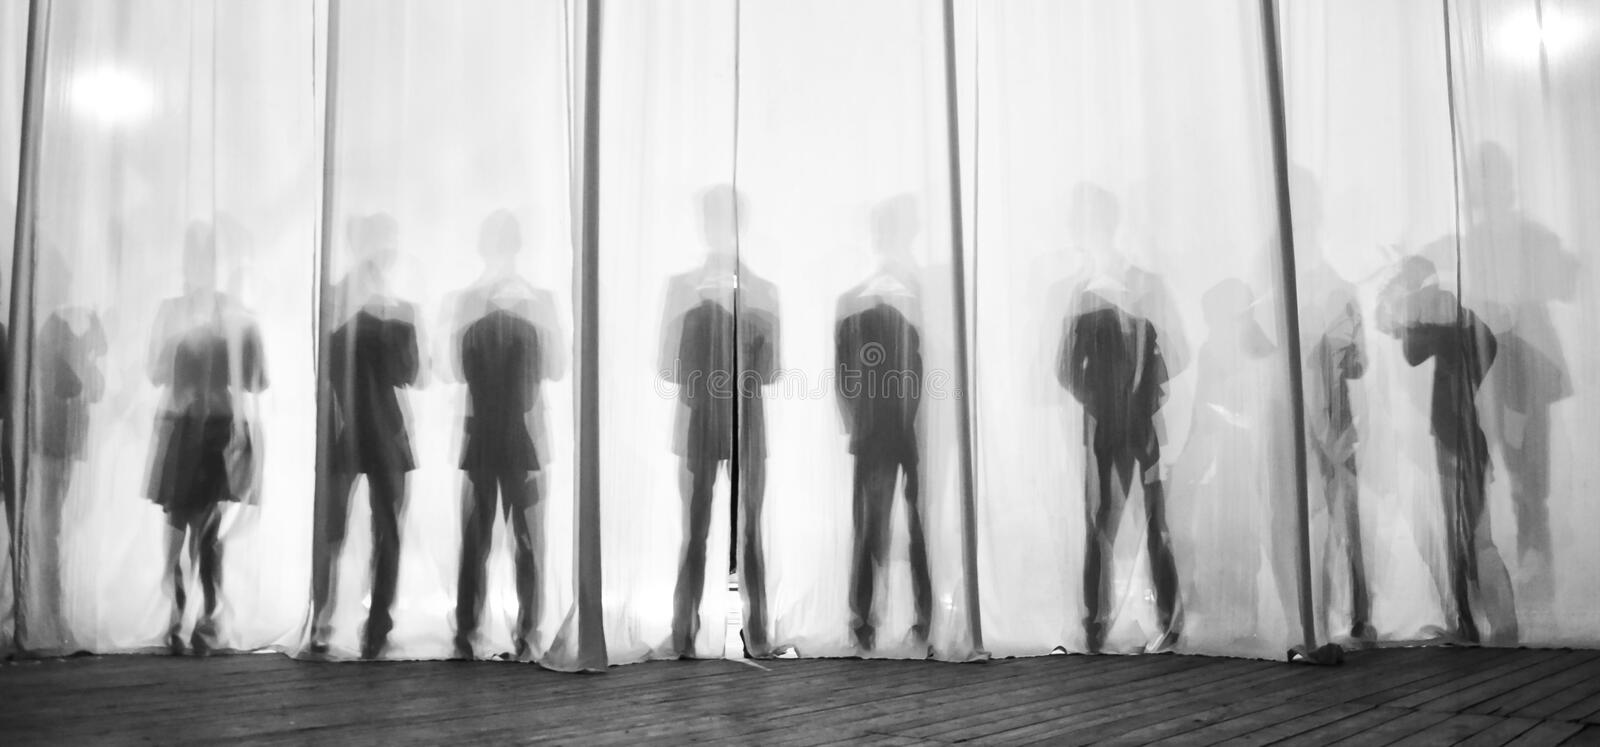 The silhouette of the men behind the curtain in the theater on stage, the shadow behind the scenes is similar to the white and bla. Ck piano keys stock photo